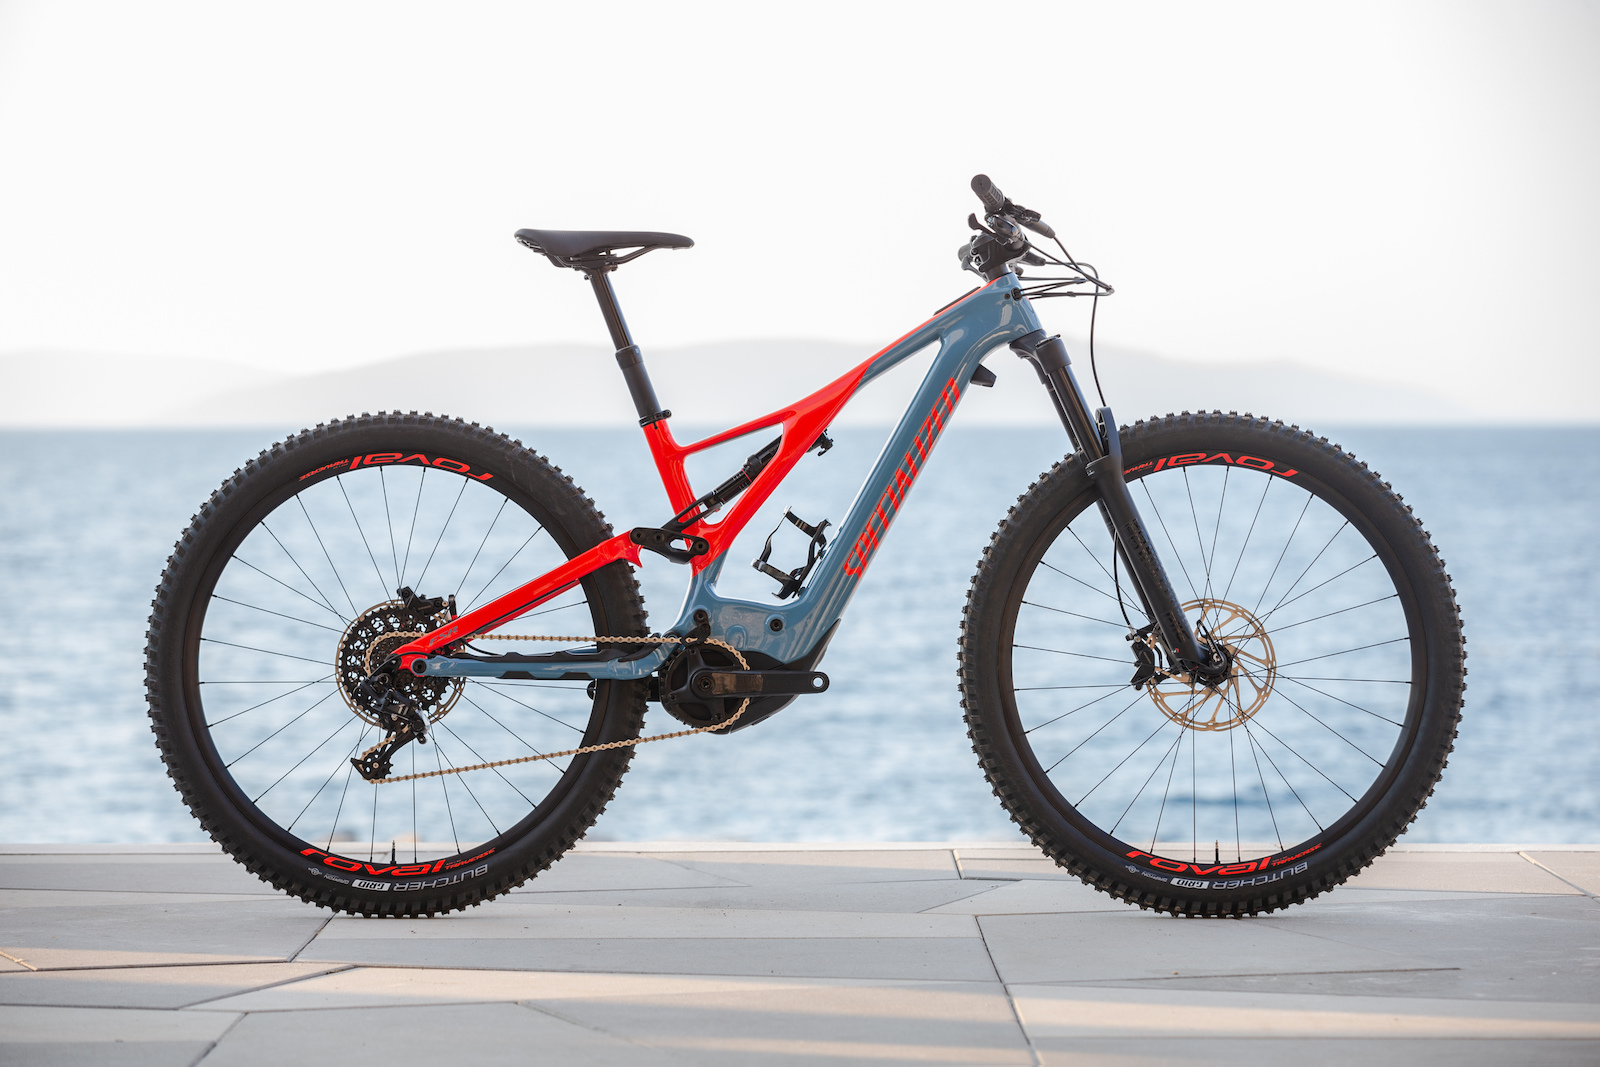 c57e2e1588a First Ride: Specialized's New Turbo Levo FSR - Pinkbike